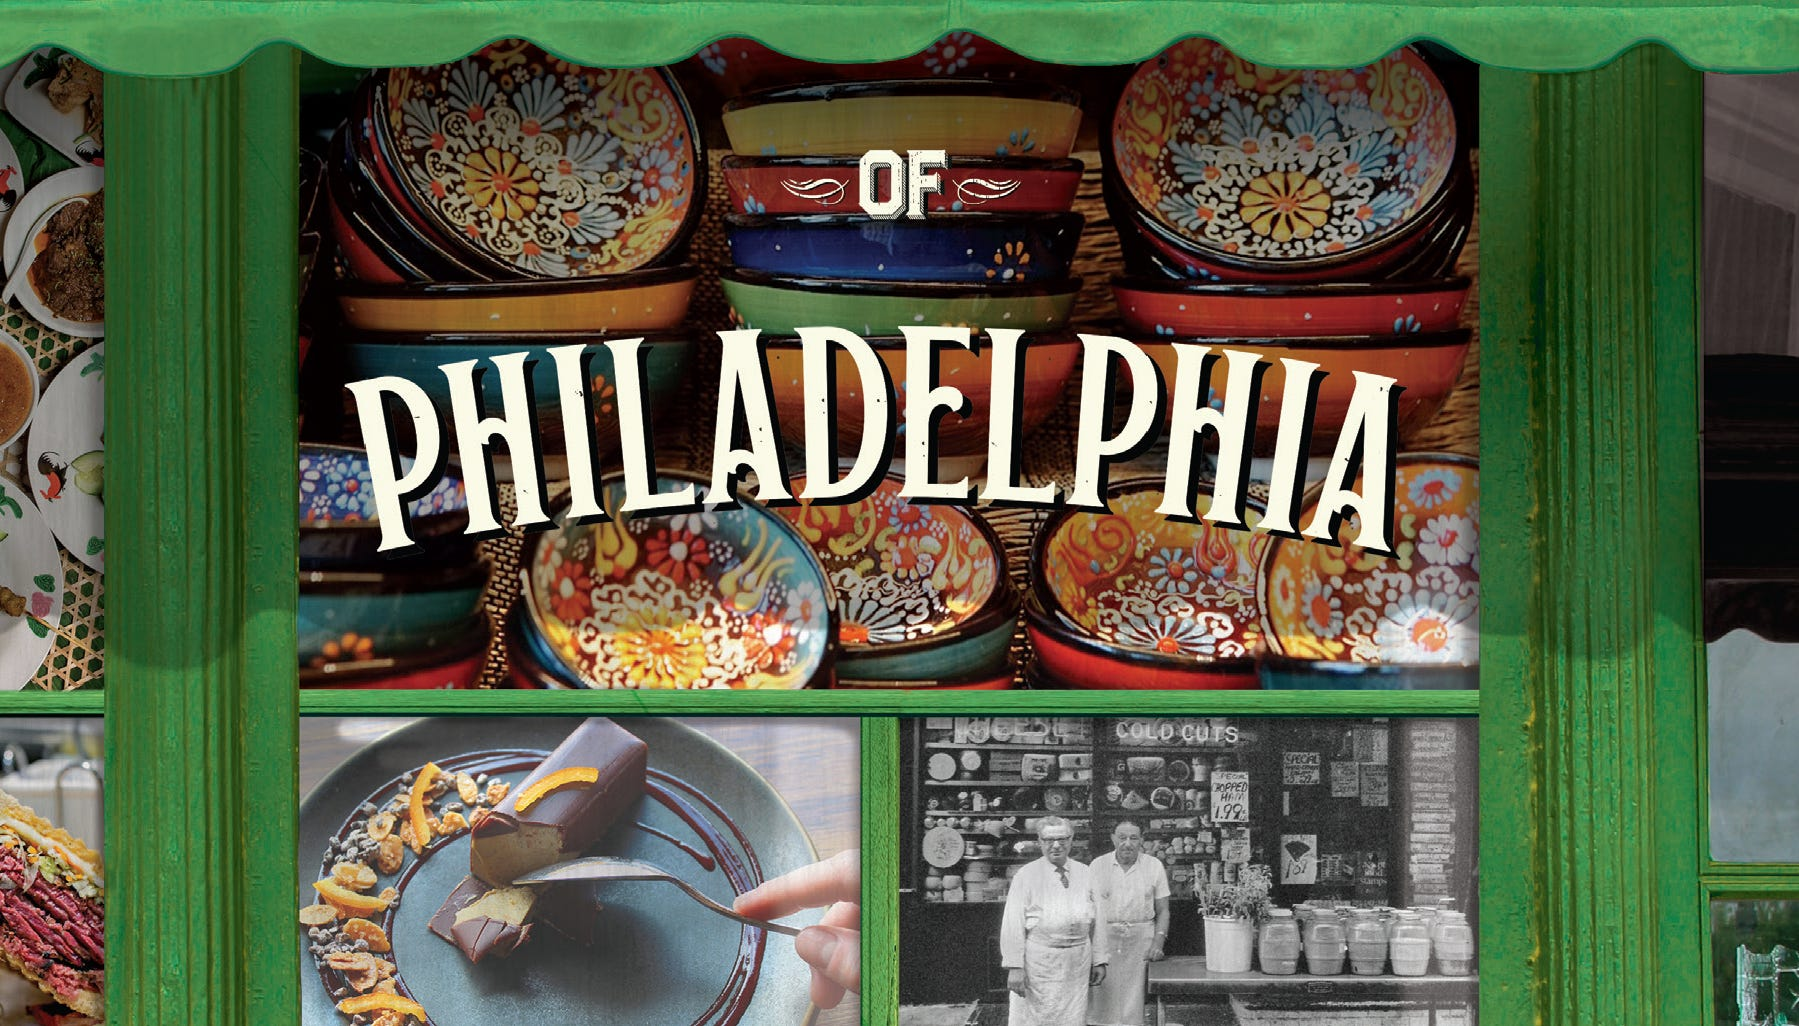 'Unique Eats and Eateries of Philadelphia' author Irene Levy Baker to dish about Philly, SJ food and restaurants at Collingswood Book Festival this weekend